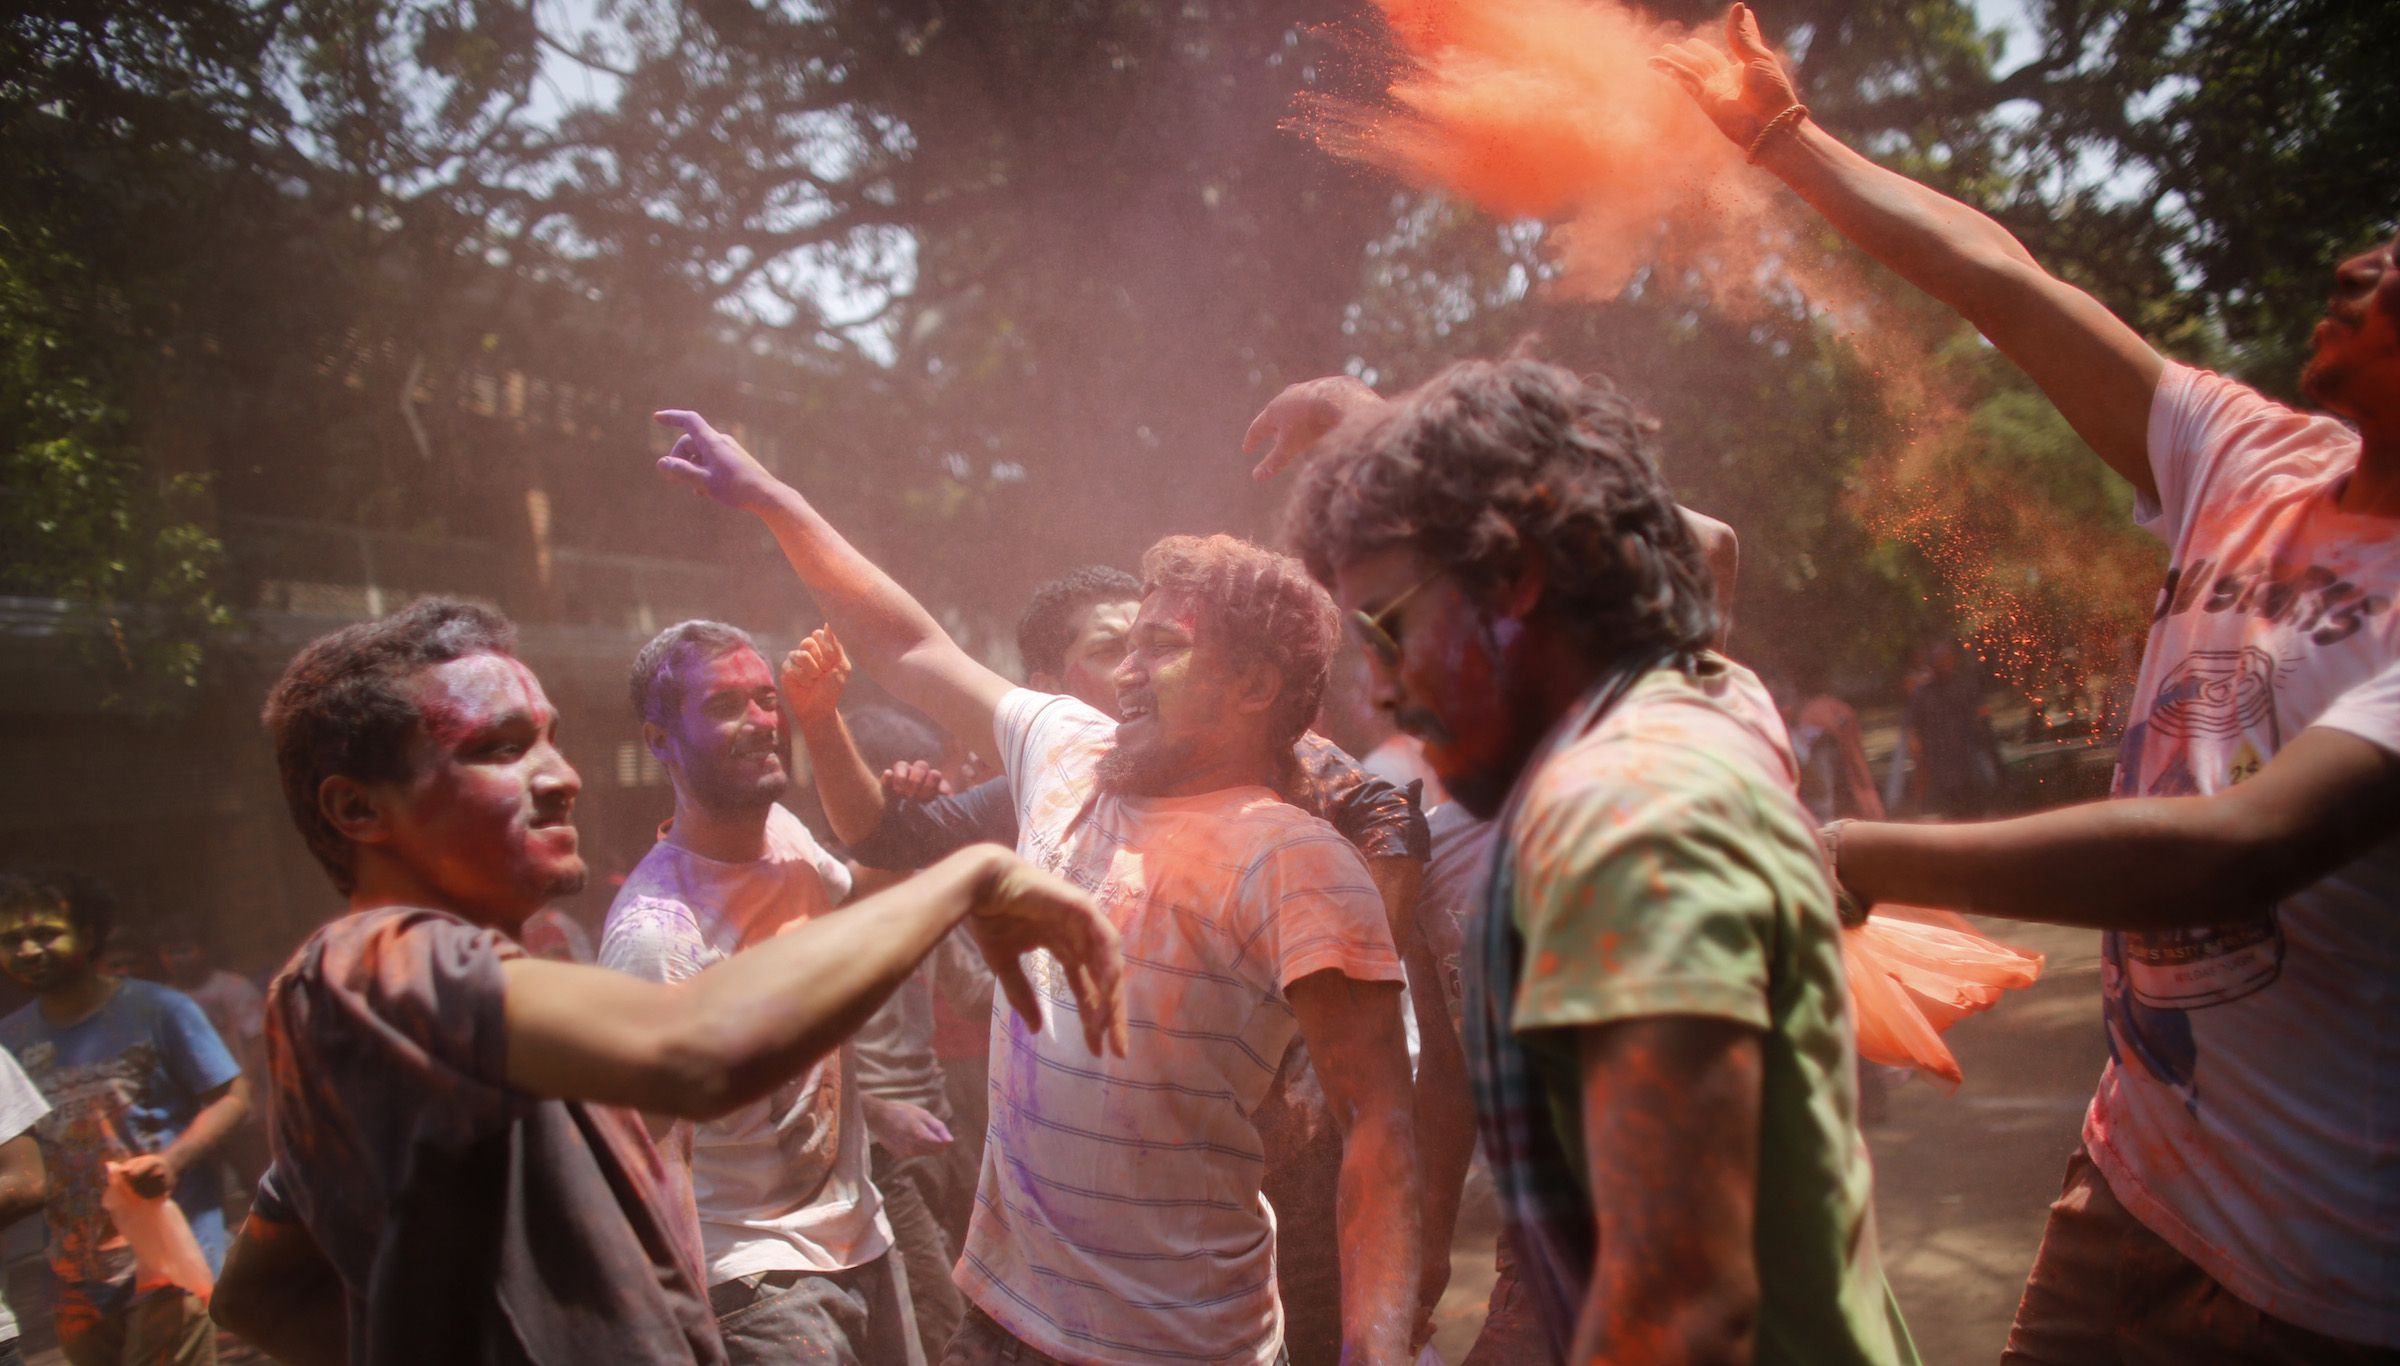 Students from the Fine Art Institute of the University of Dhaka dance as coloured powder is thrown at them during Holi celebrations in Dhaka March 28, 2013. Holi, also known as the Festival of Colours, heralds the beginning of spring and is celebrated by Hindu community in Bangladesh. REUTERS/Andrew Biraj (BANGLADESH - Tags: RELIGION SOCIETY) - RTXY0EO